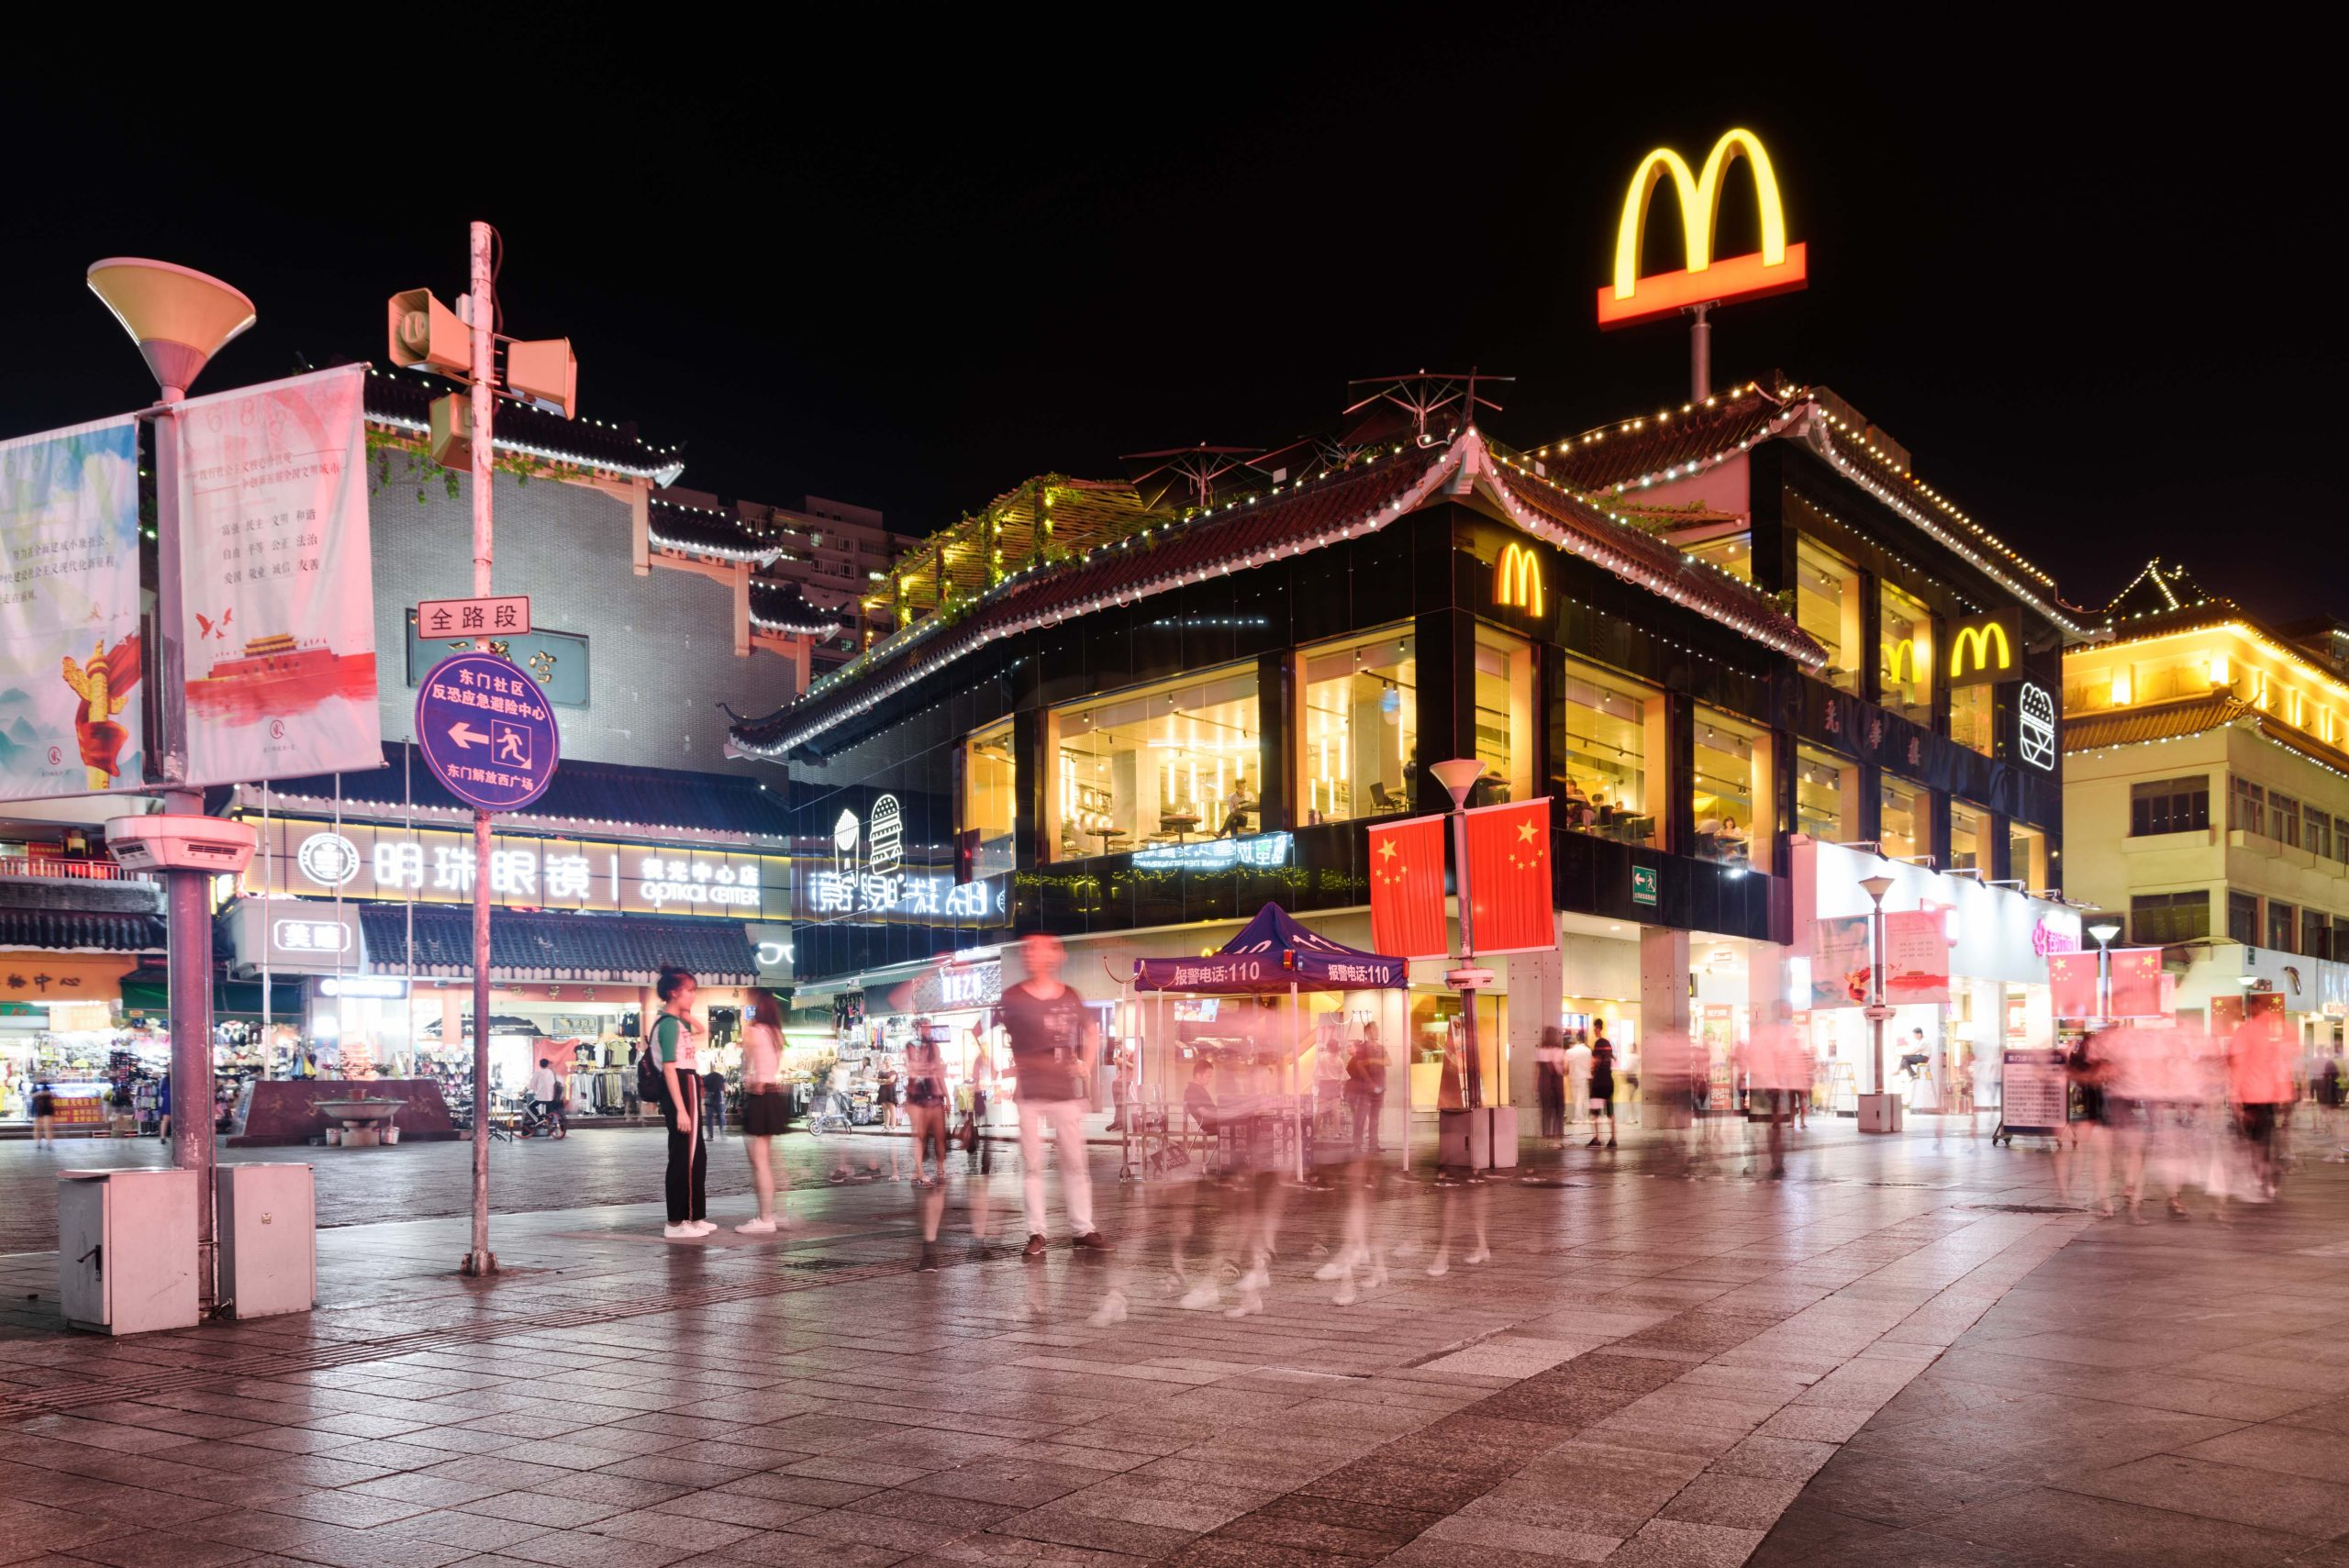 McDonald's China released 188 NFTs on 31st anniversary